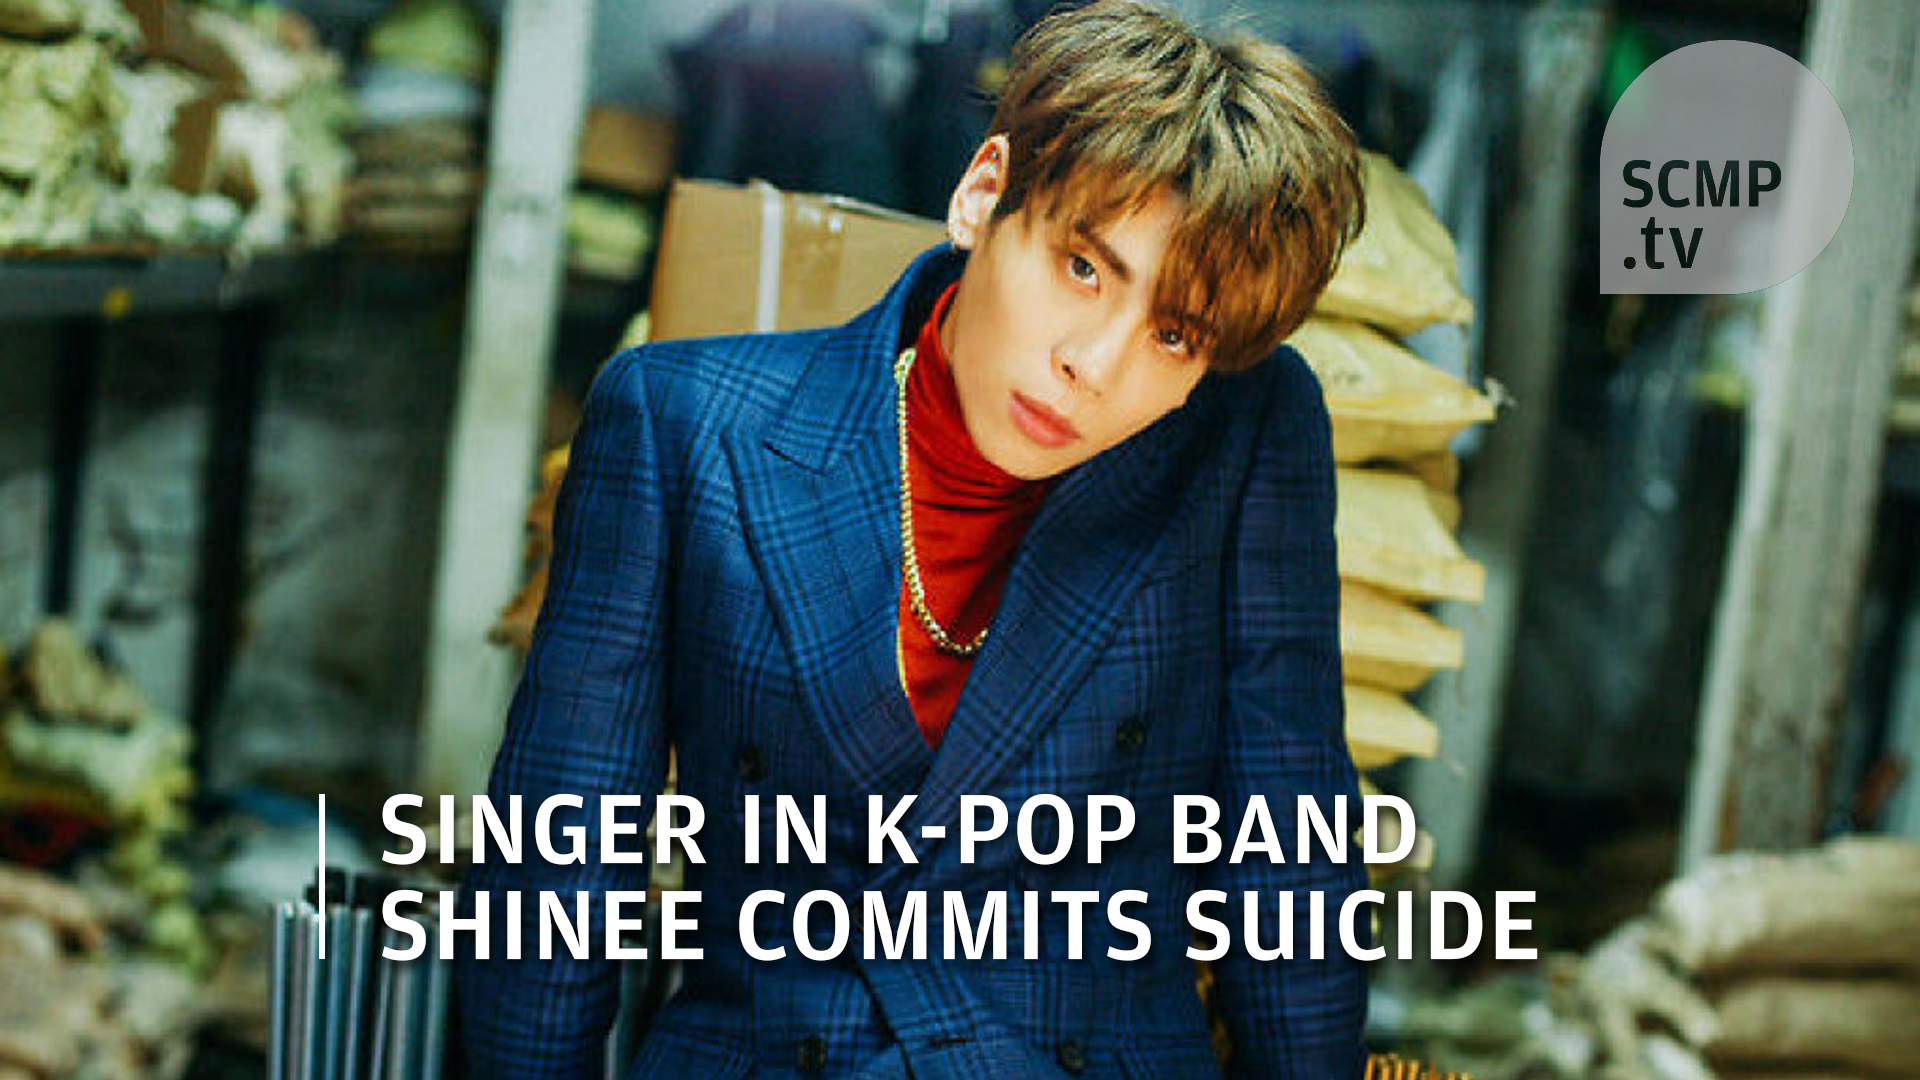 Death of SHINee singer Jonghyun shows the extreme pressures of South